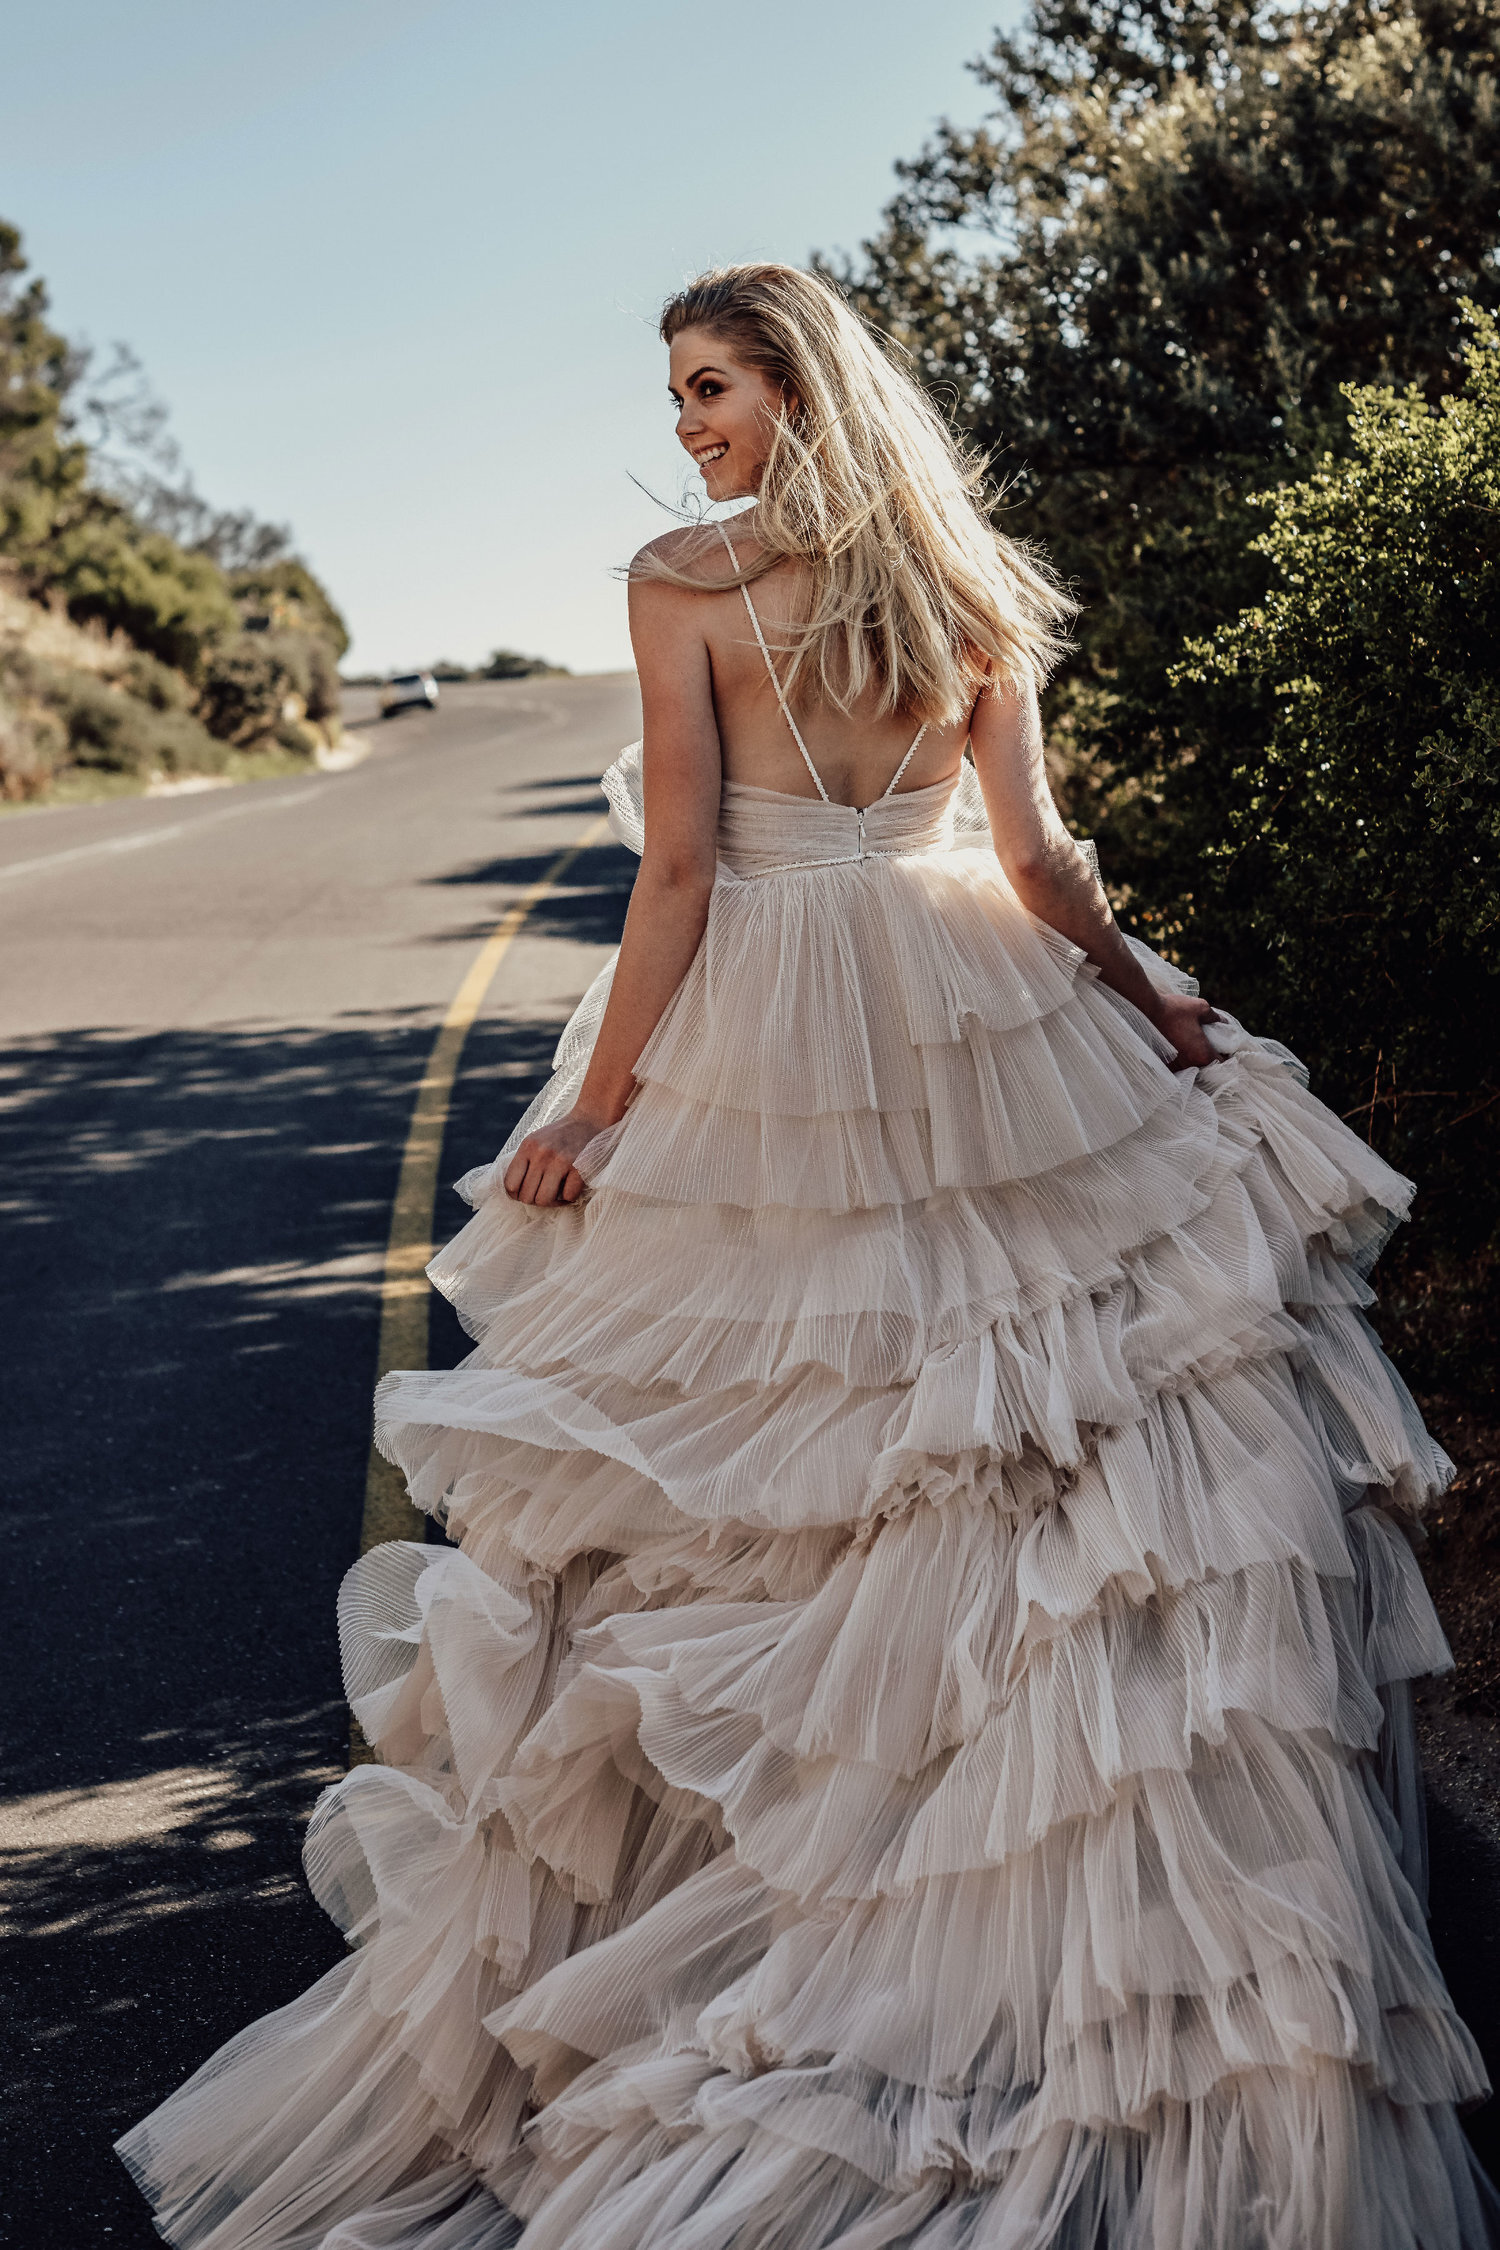 bells - The Bells Gown is an absolute scene-stealer. Layers upon layers of pleated tulle cascade from hints of blush into ivory. The deep plunged neckline adds sensuality and lightness, and the straps and subtle belt are hand-beaded for a touch of sparkle.